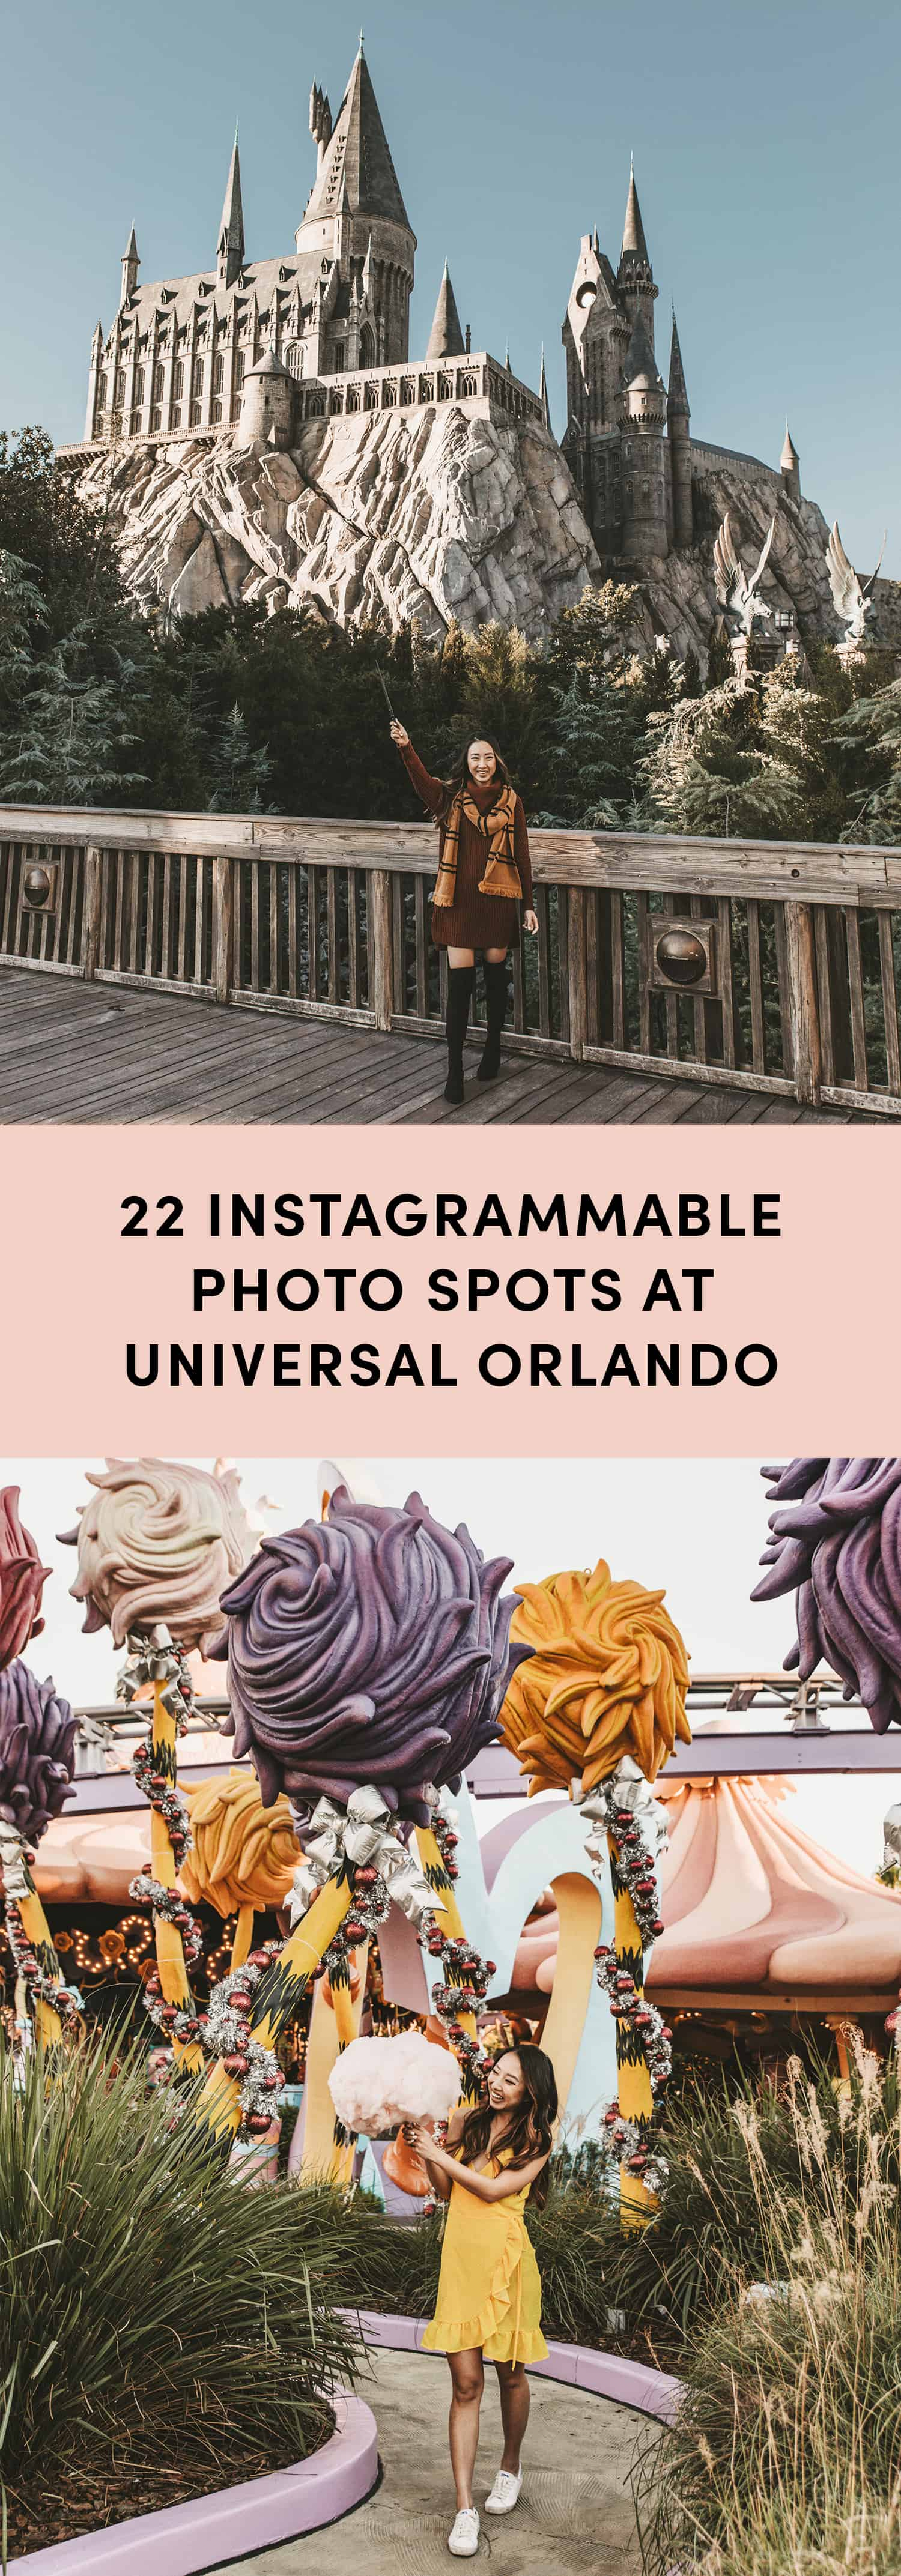 22 Most Instagrammable Photo Spots At Universal Orlando